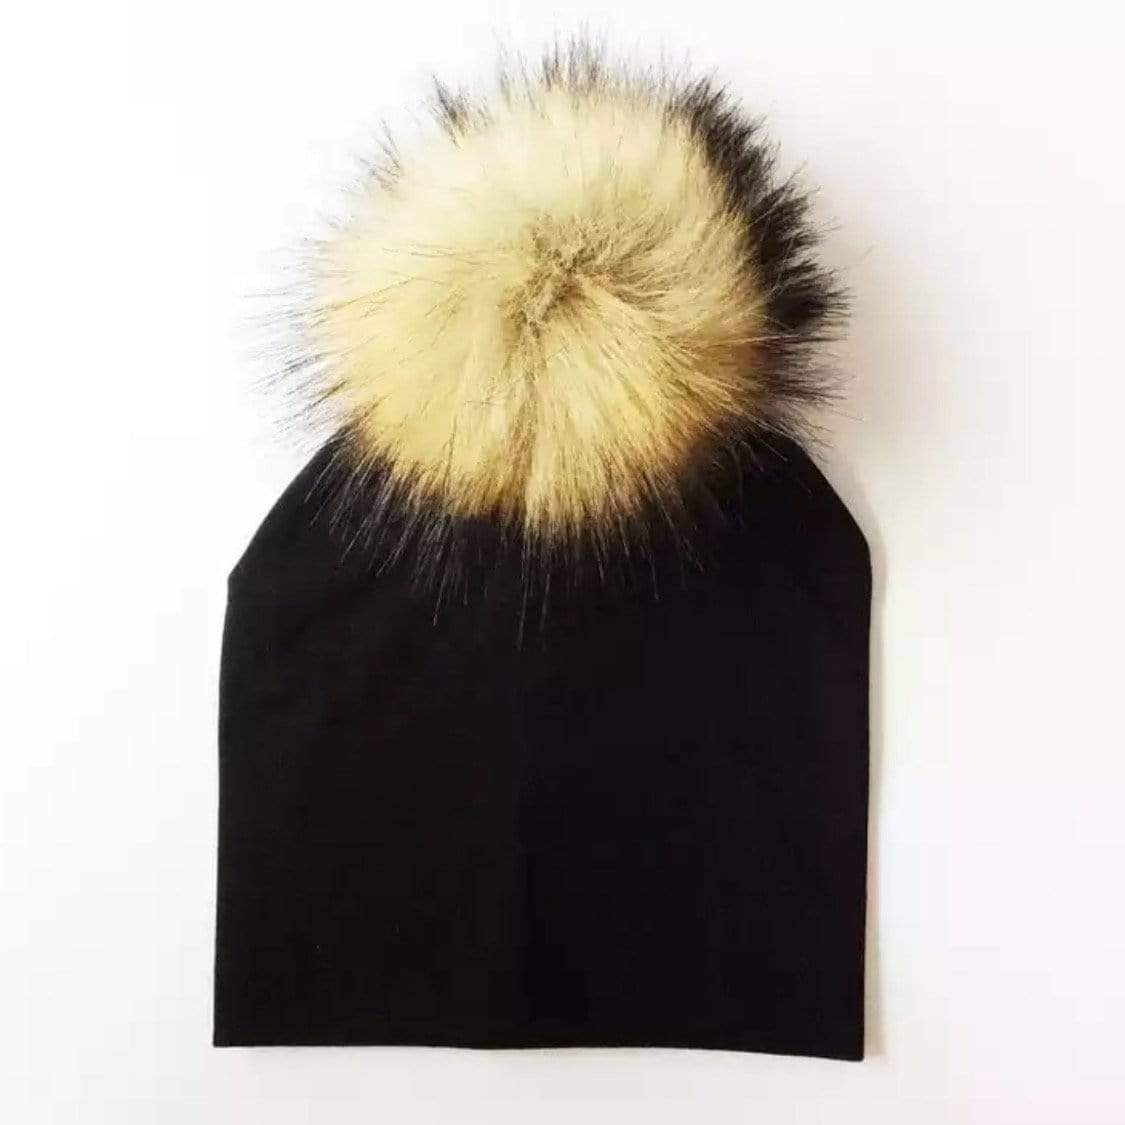 Tiny Trendsetter - Black with Brown Pom Pom Beanie Hat (Baby - Adult) Hats Tiny Trendsetter 1-4 years